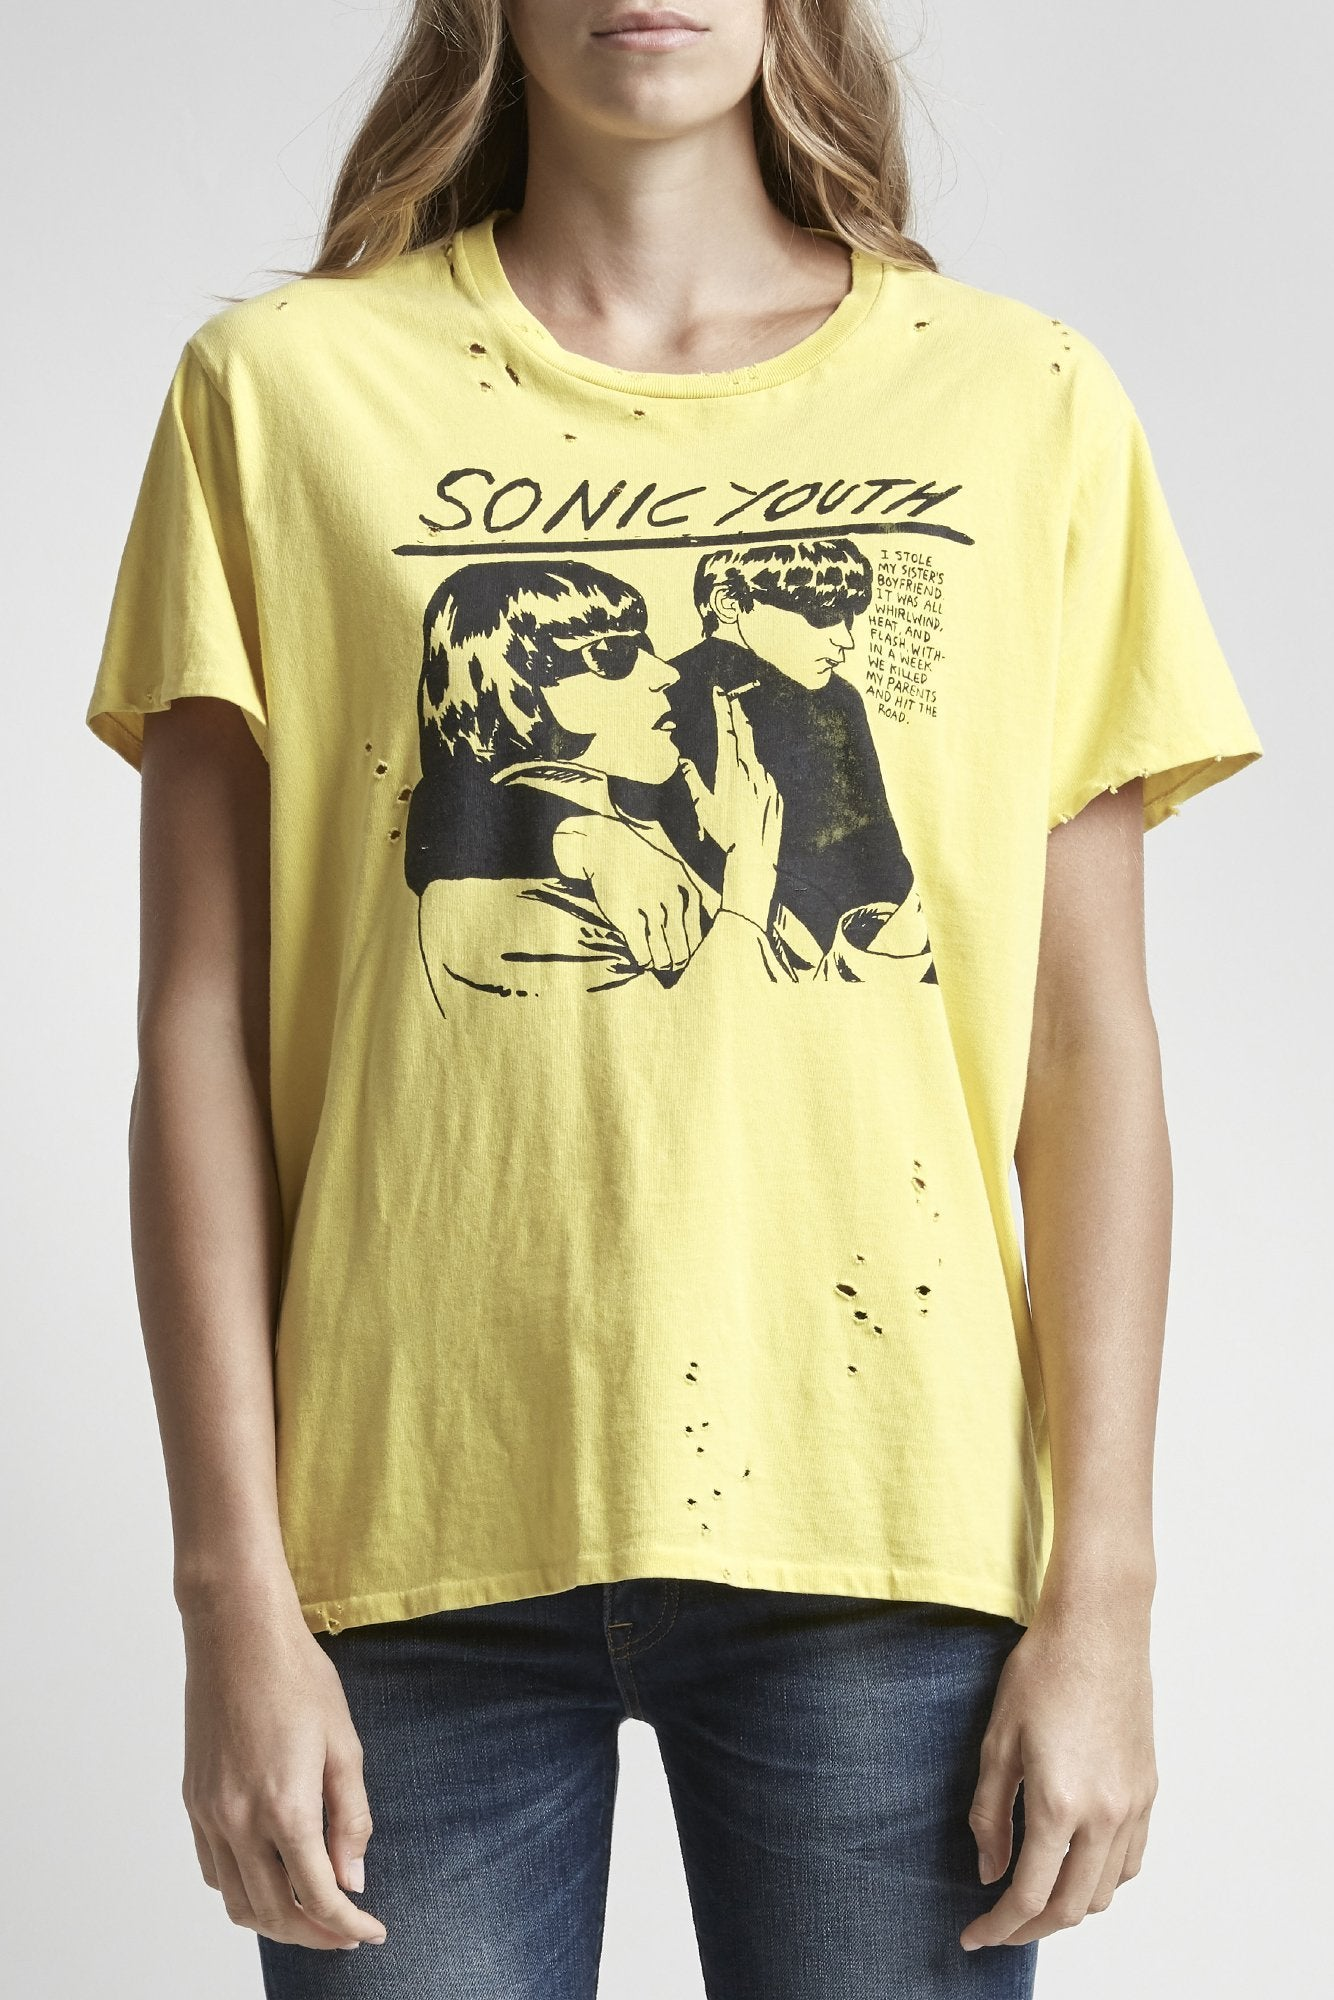 Sonic Youth Boy T - Yellow